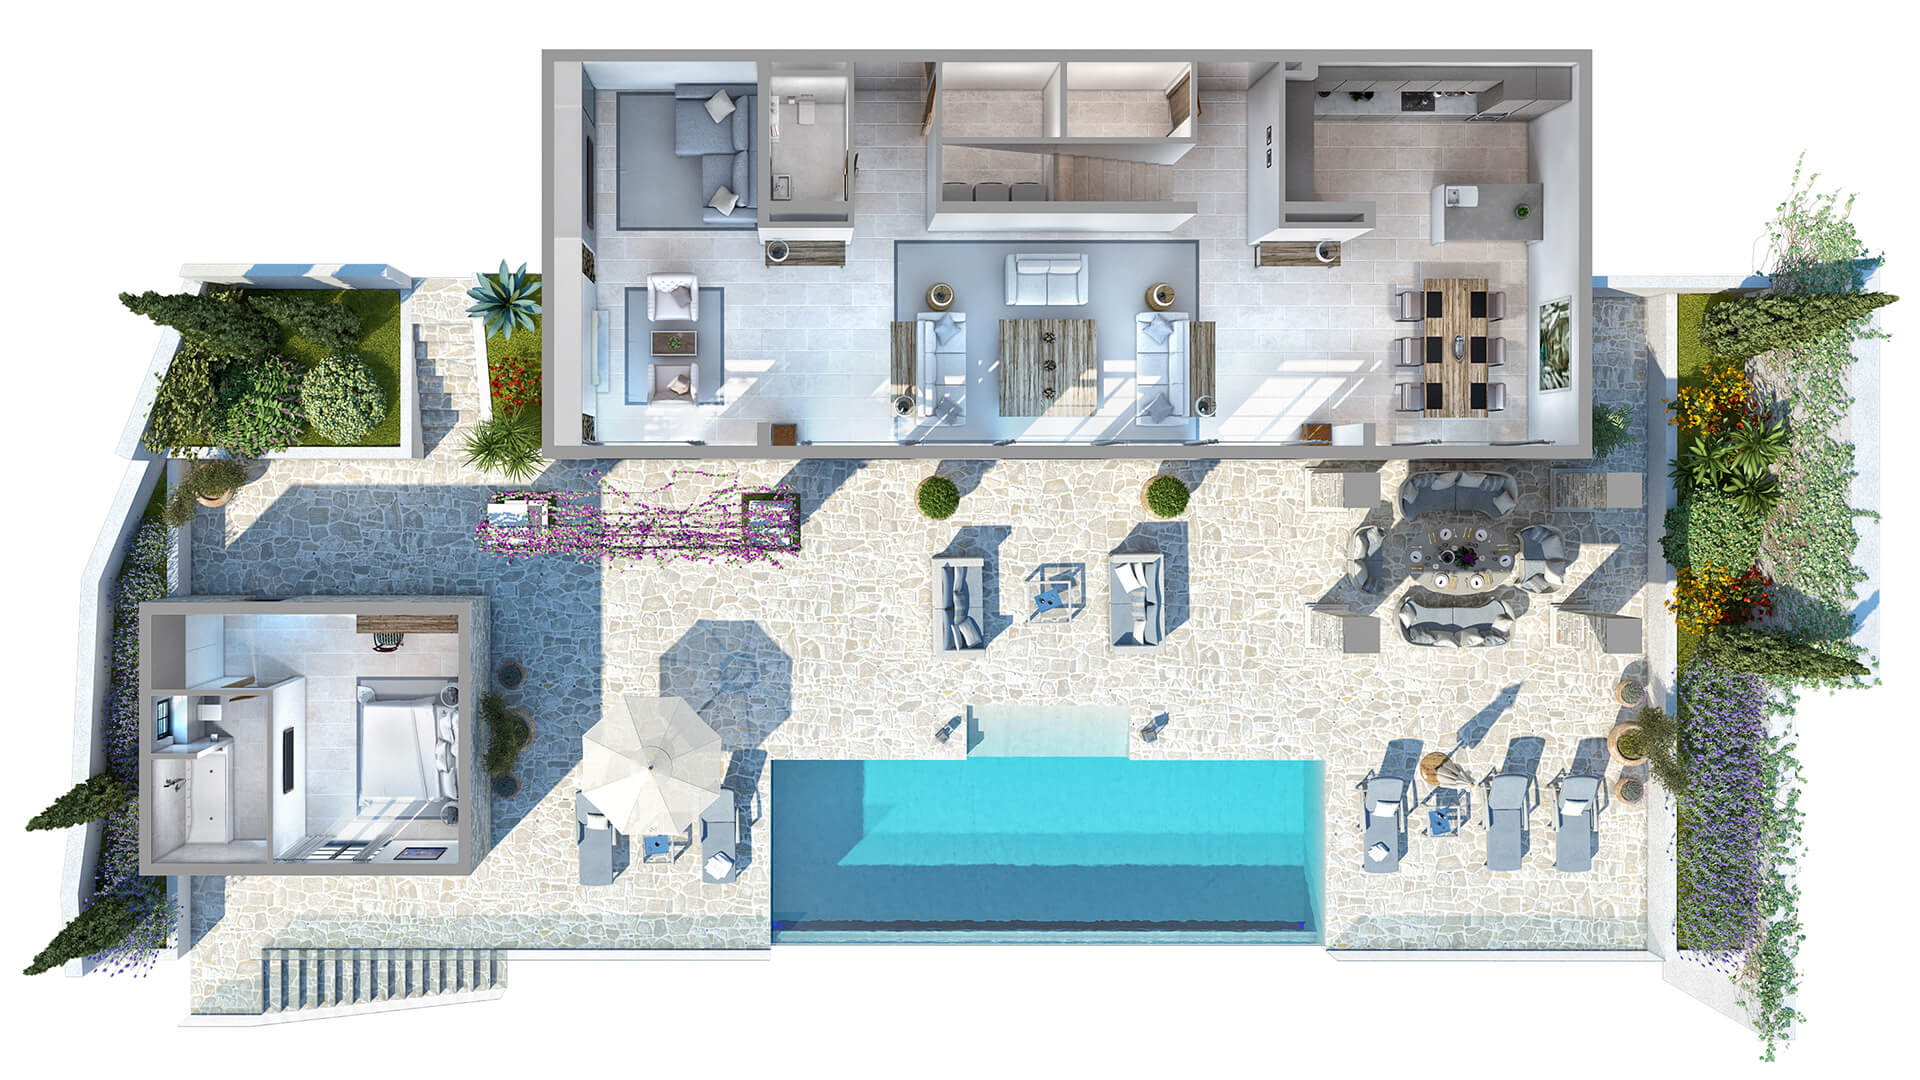 The 3D render of the house with a terrace and a swimming pool.